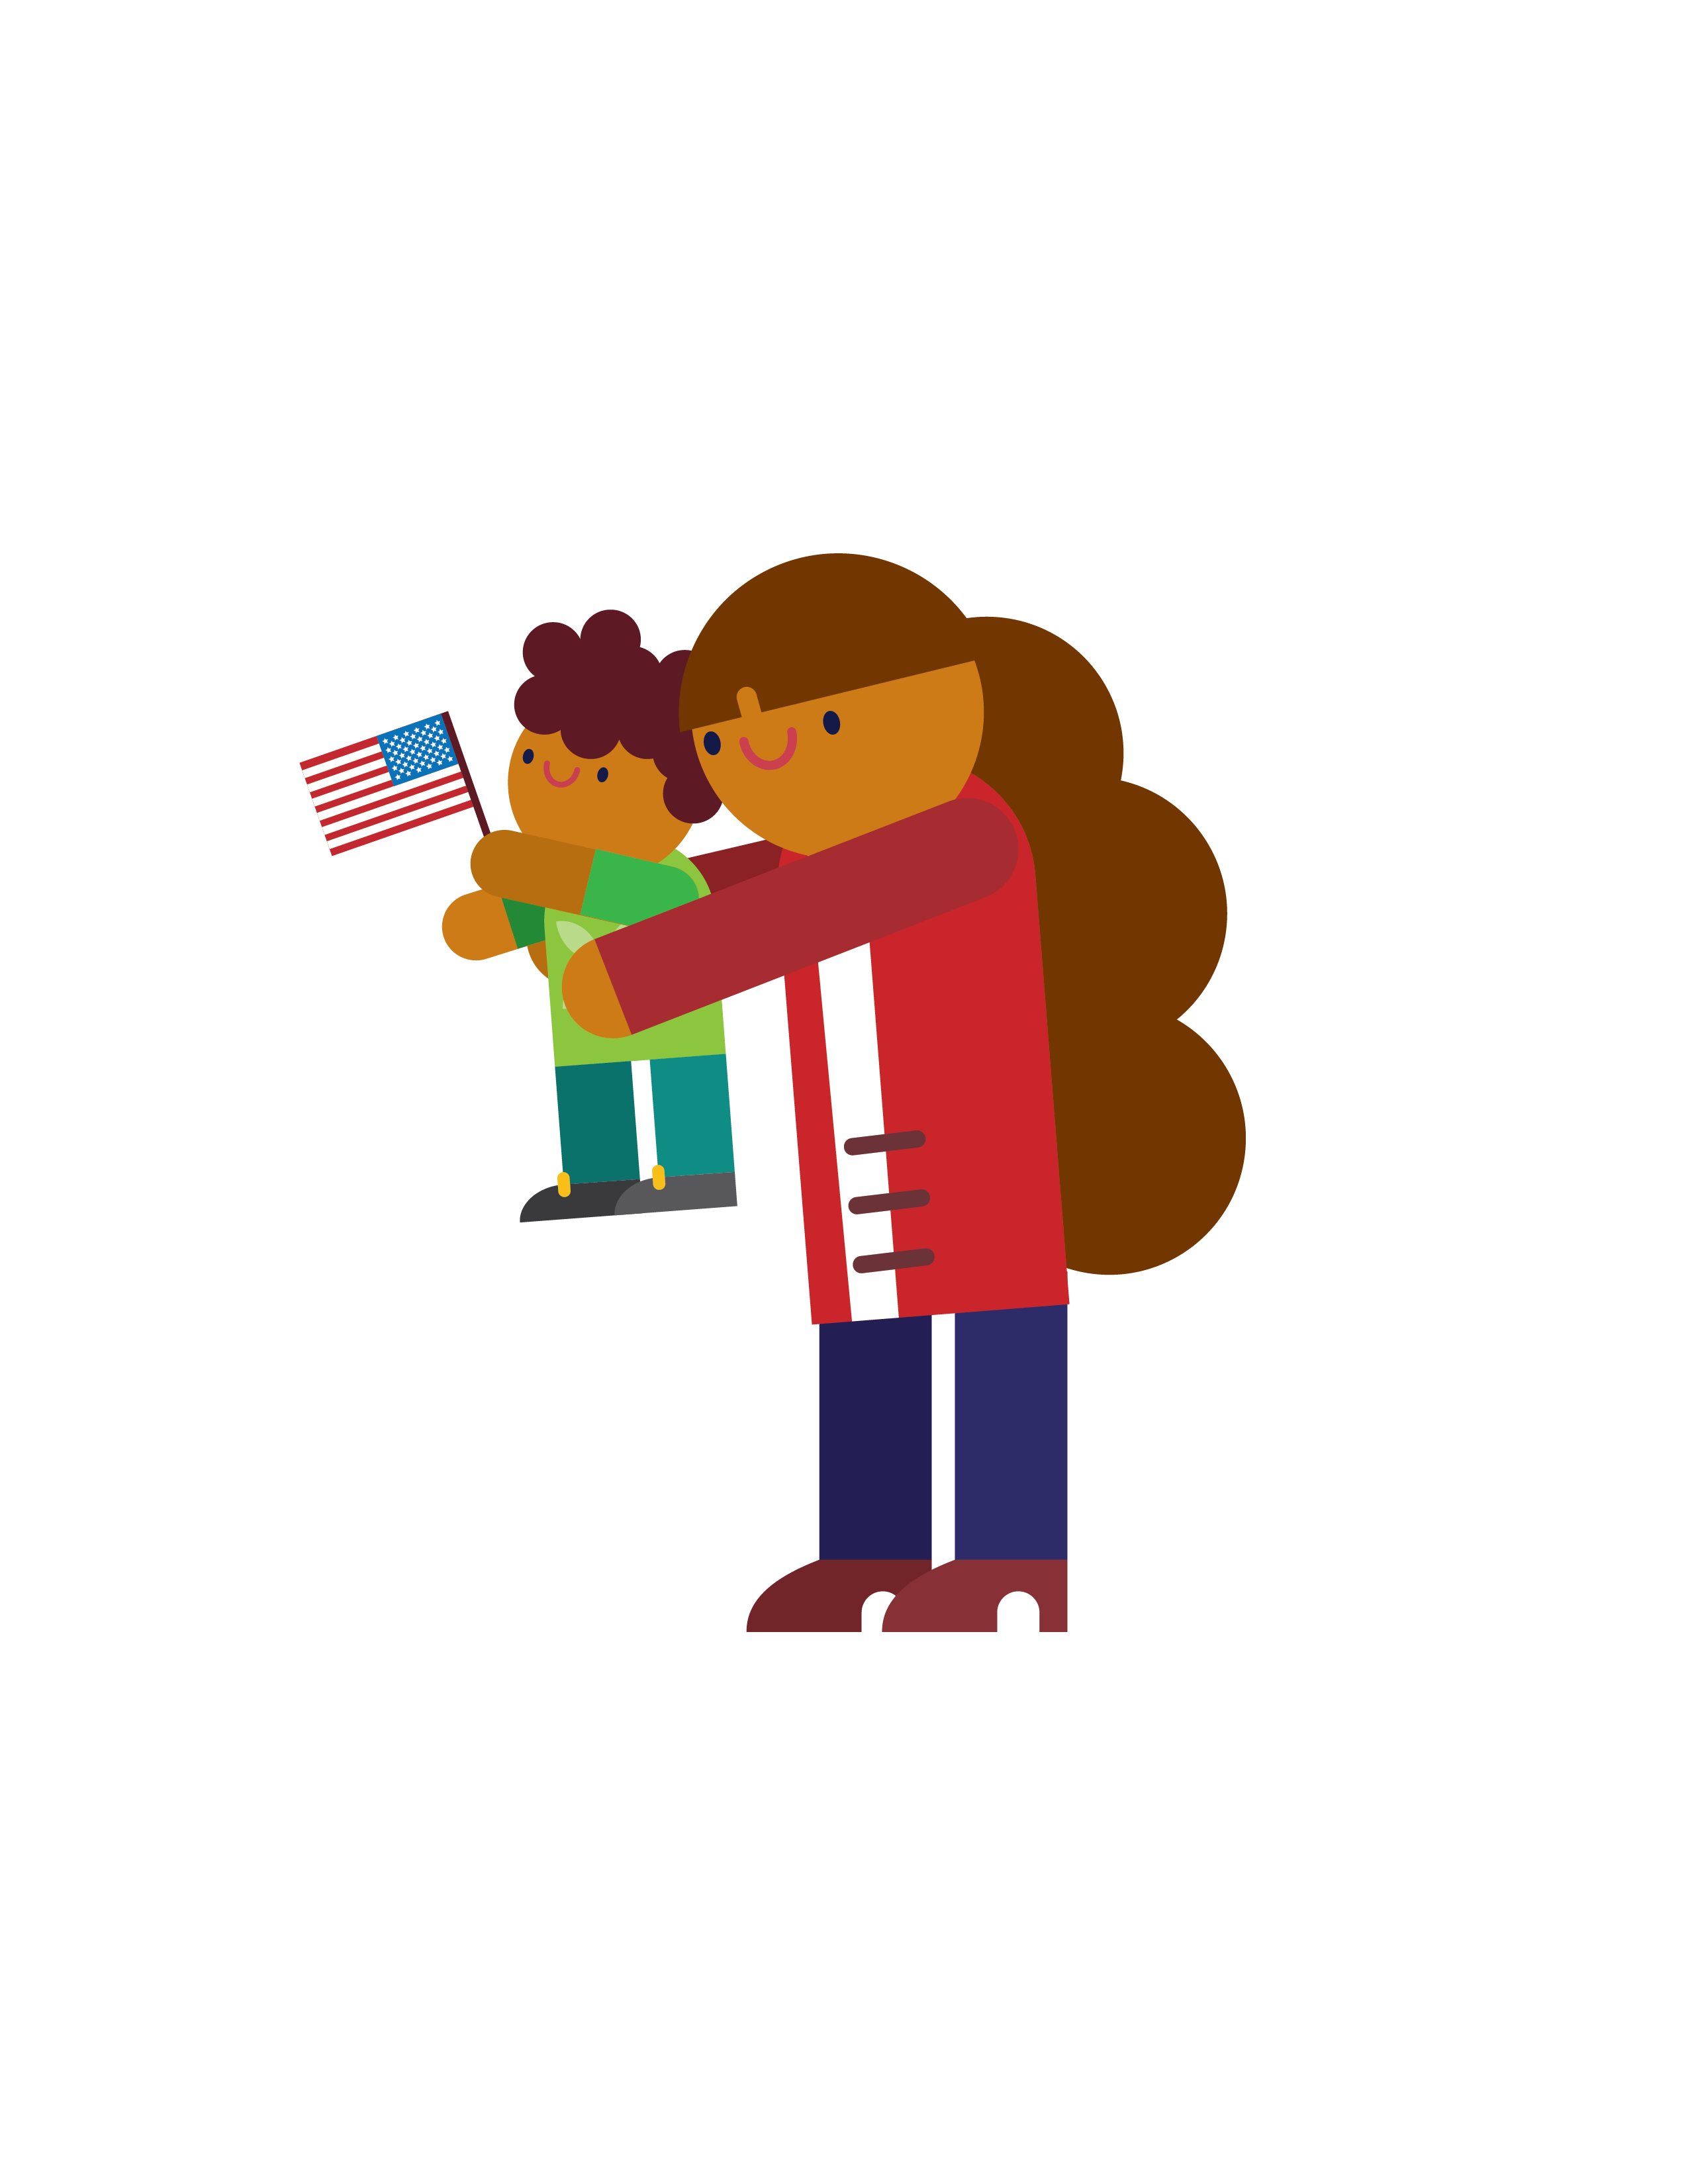 Immigration clipart illegal immigration, Immigration ...